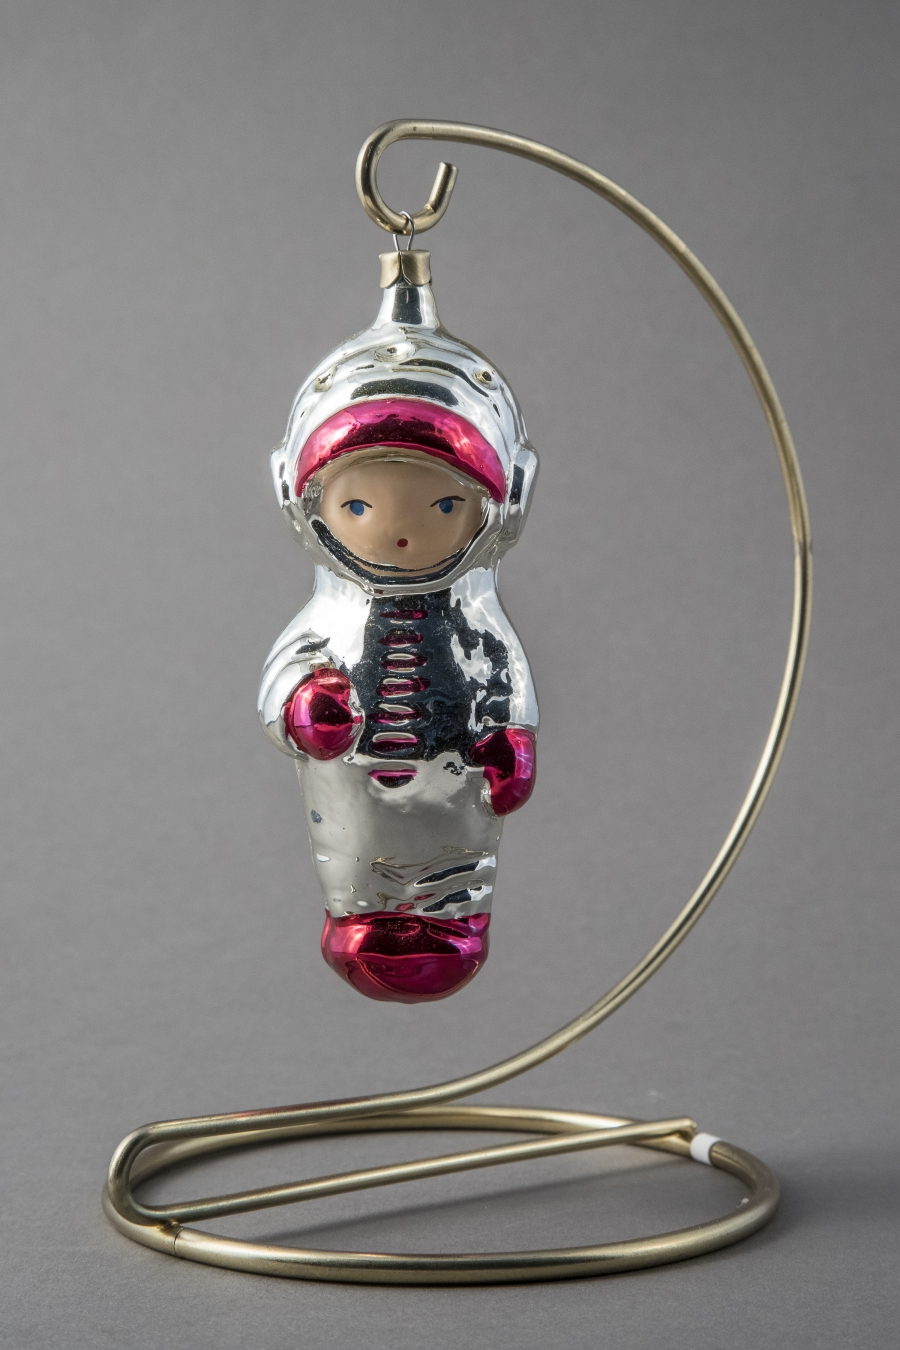 A cosmonaut ornament from 1960, made of painted blown glass in a Russian factory.